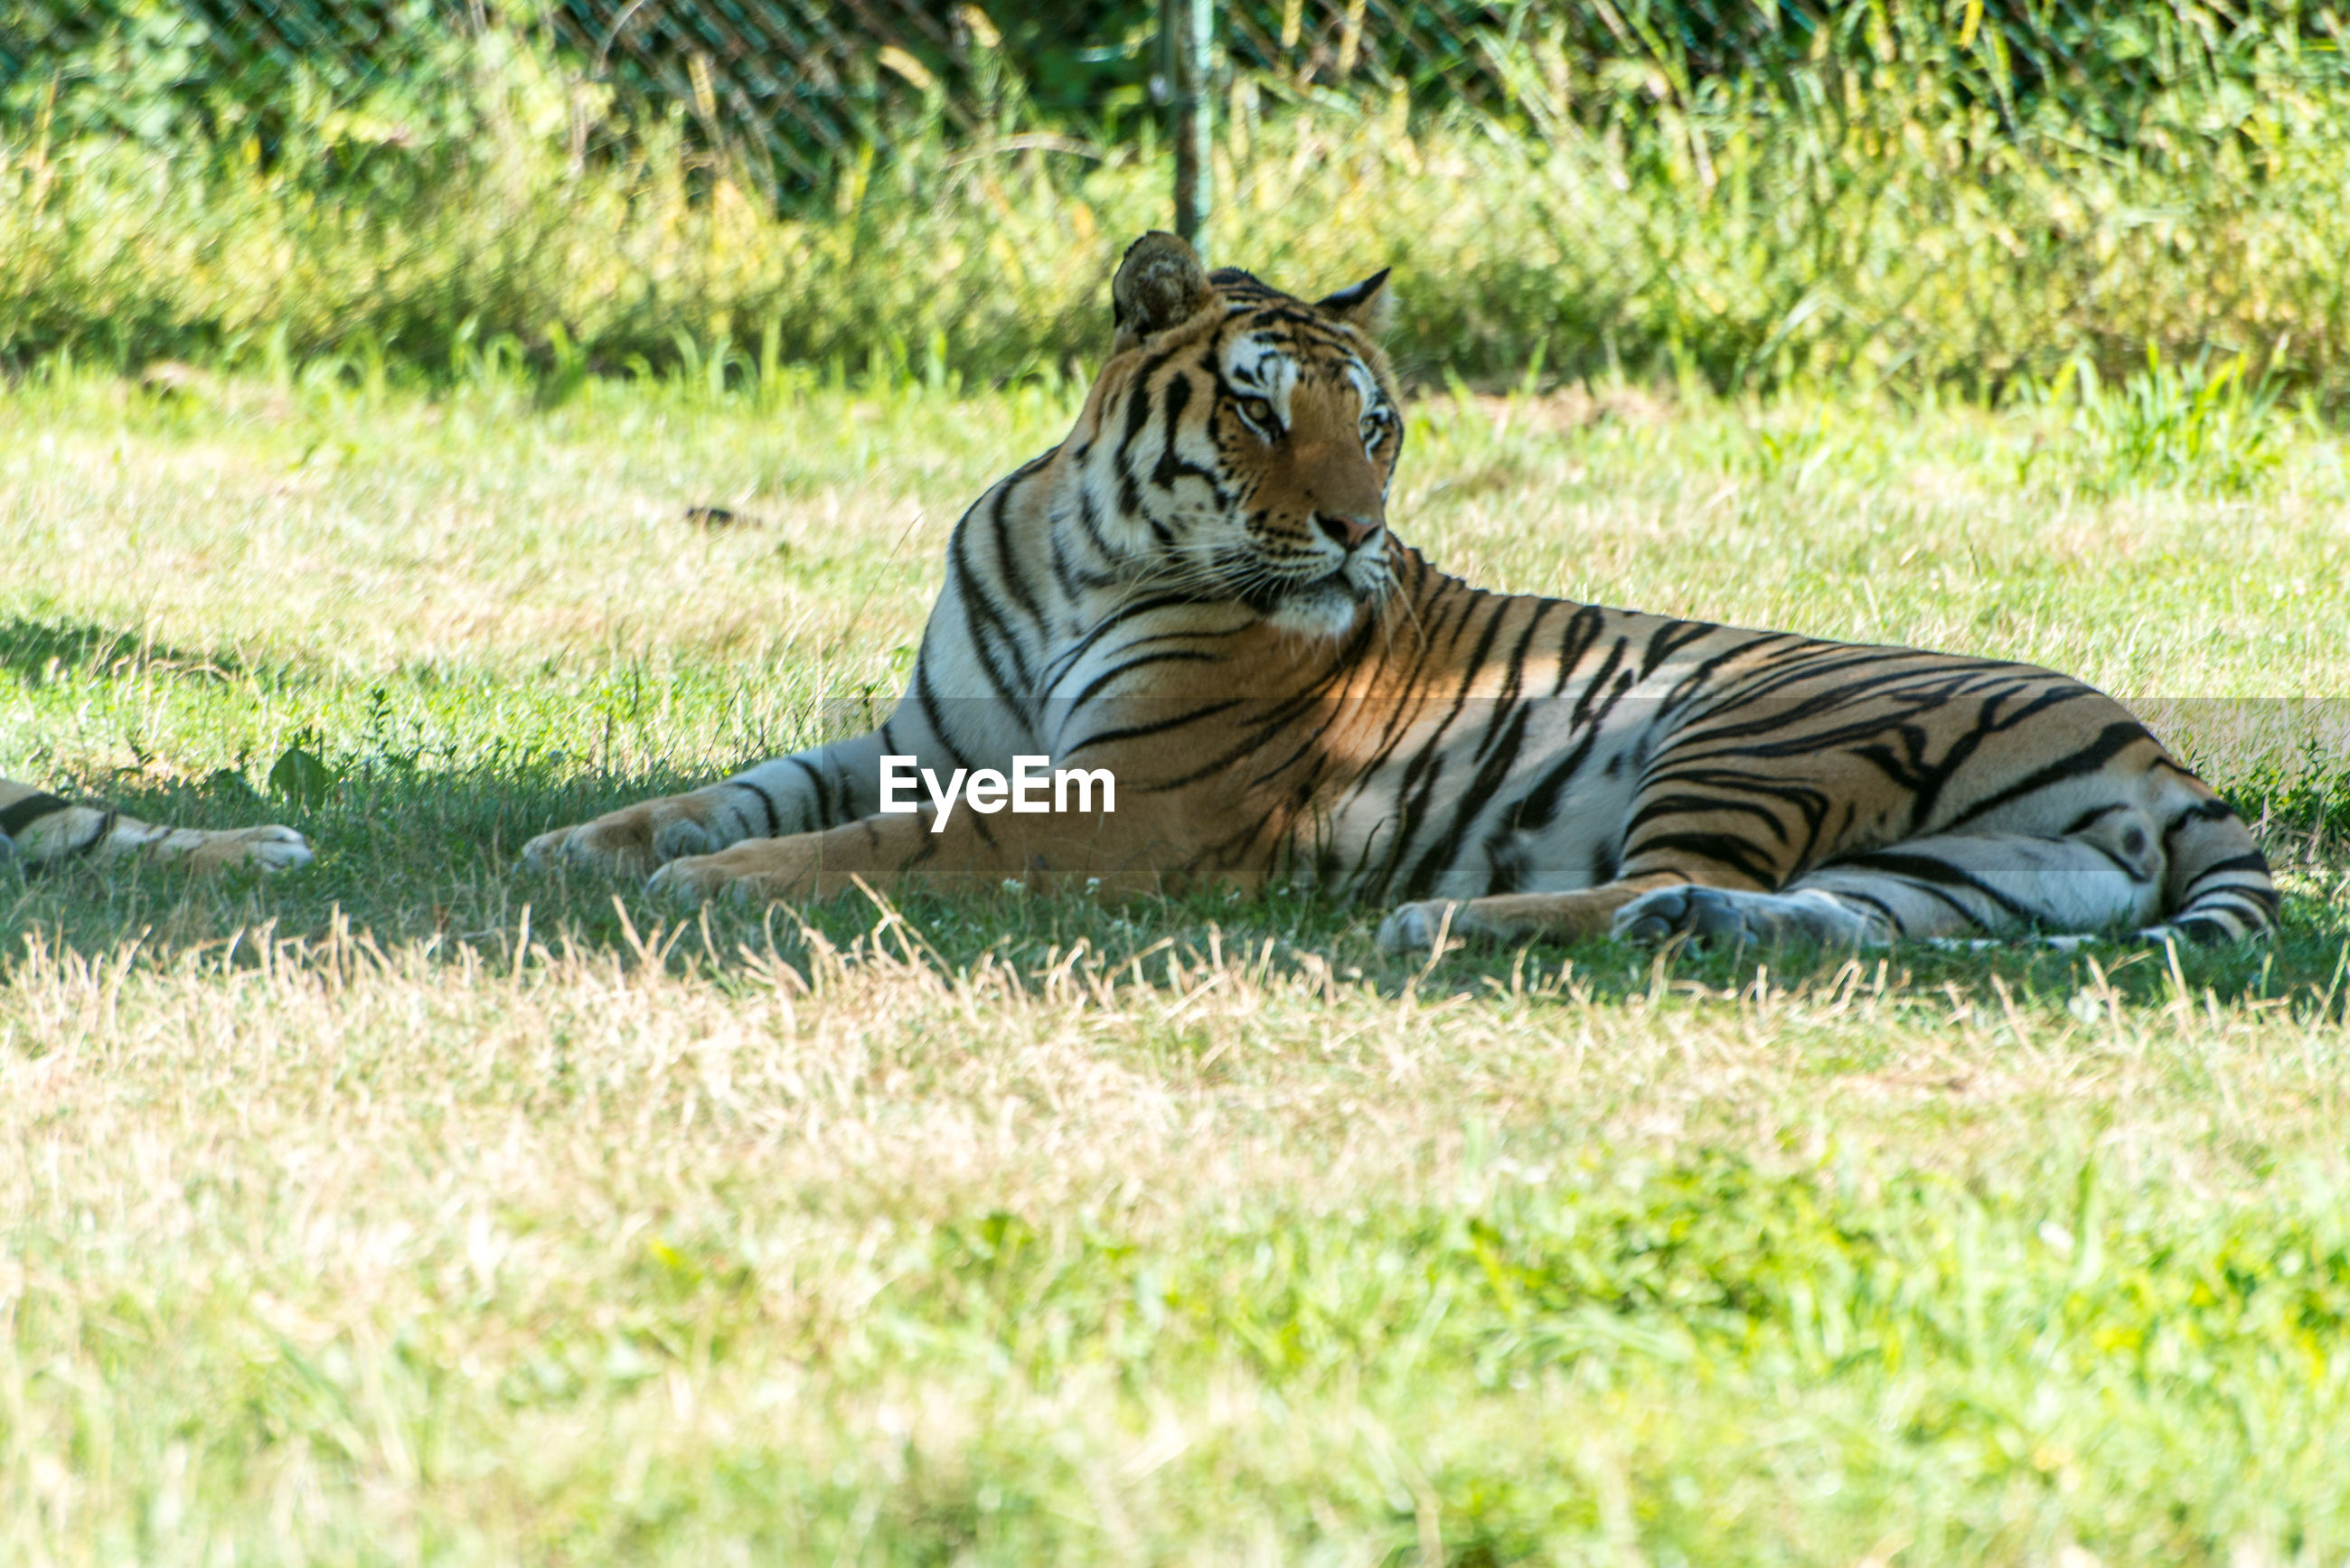 Tiger sitting on field